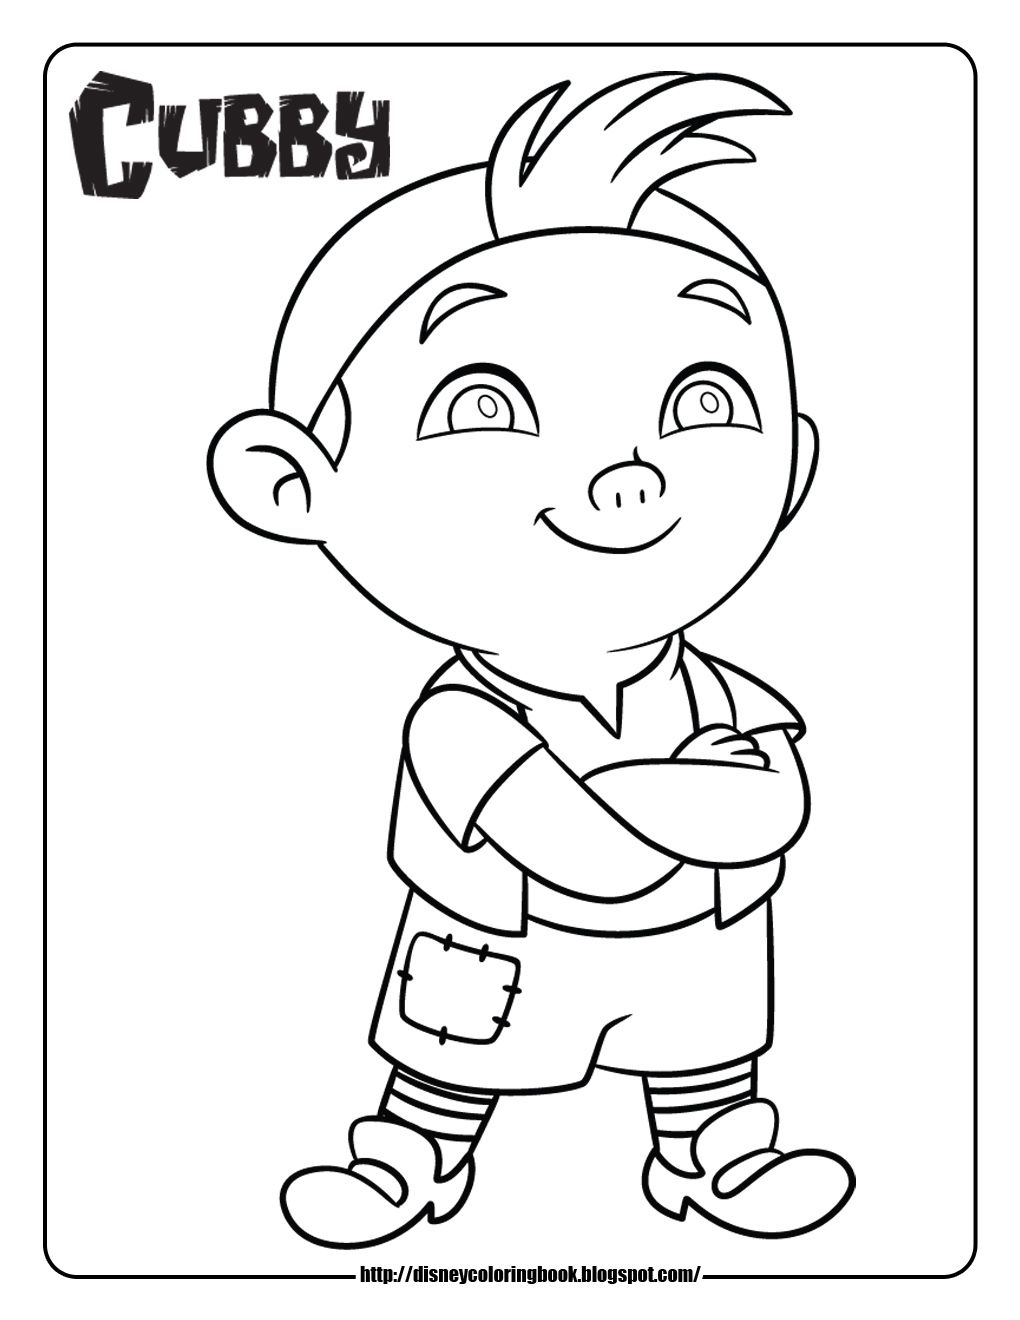 Free coloring pages disney junior - Free Coloring Pages Disney Junior 23